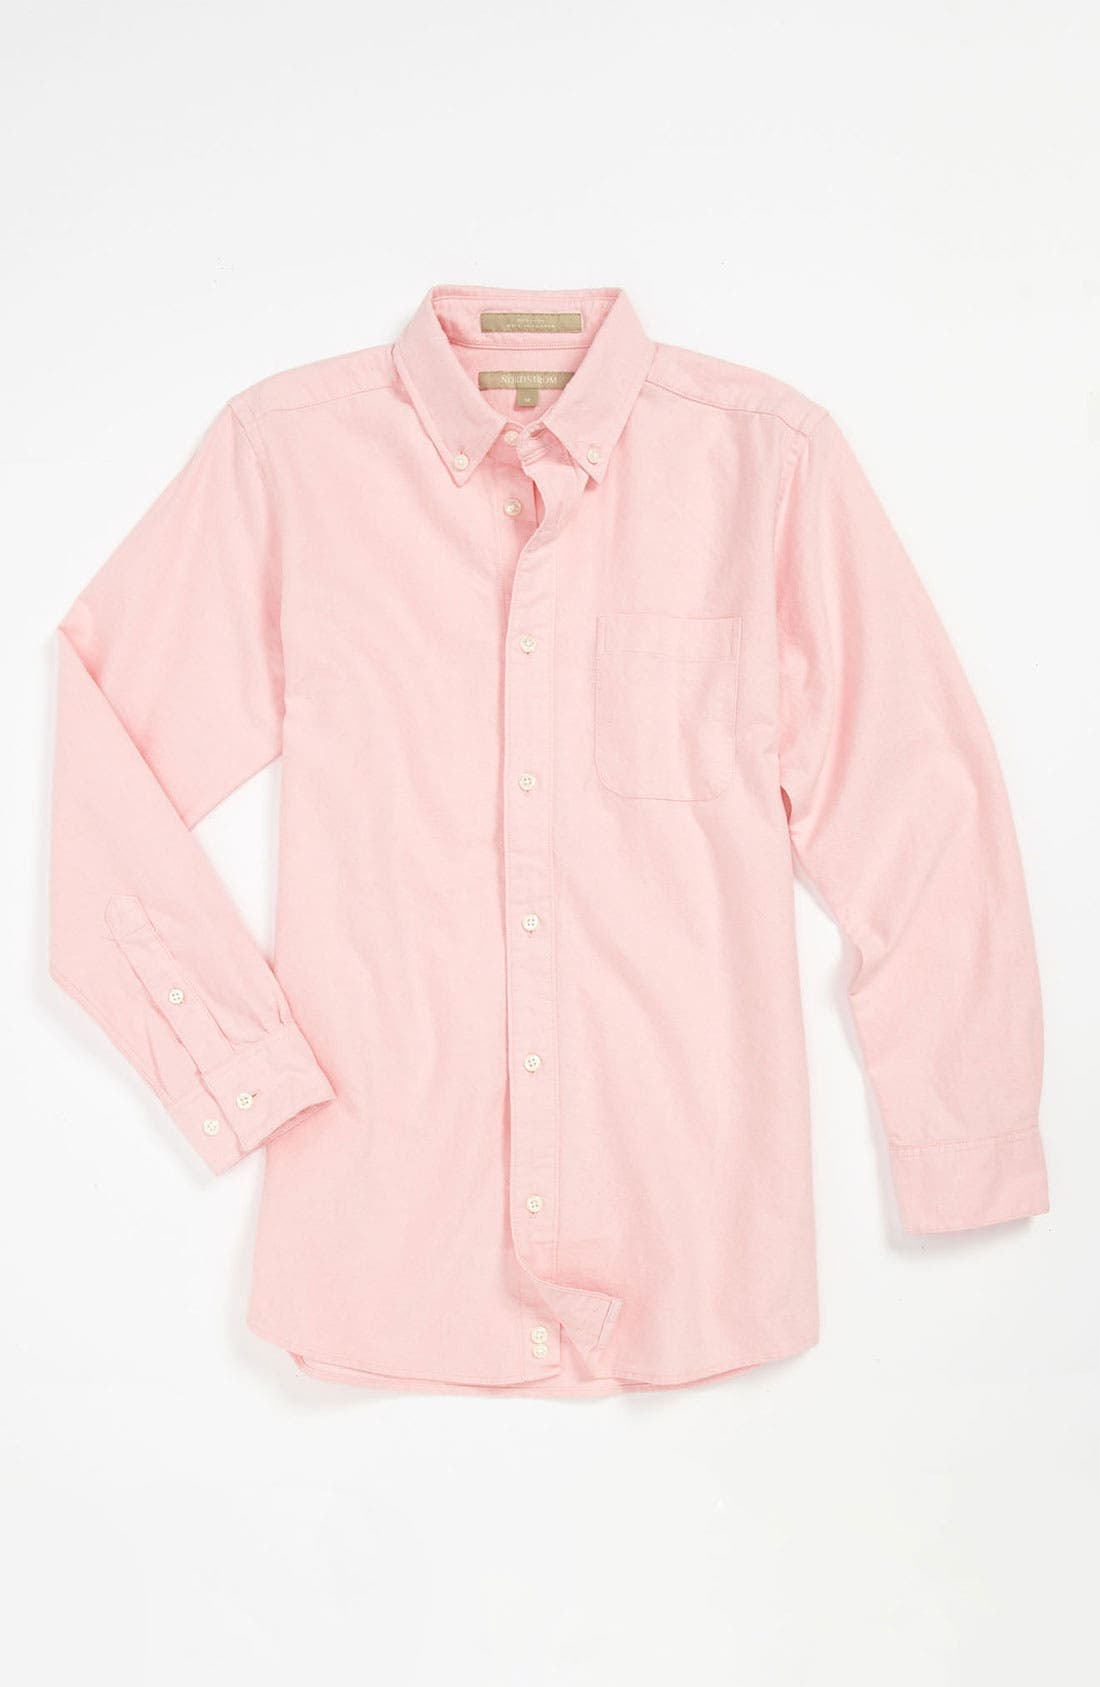 Alternate Image 1 Selected - Nordstrom 'Michael' Woven Oxford Shirt (Little Boys)